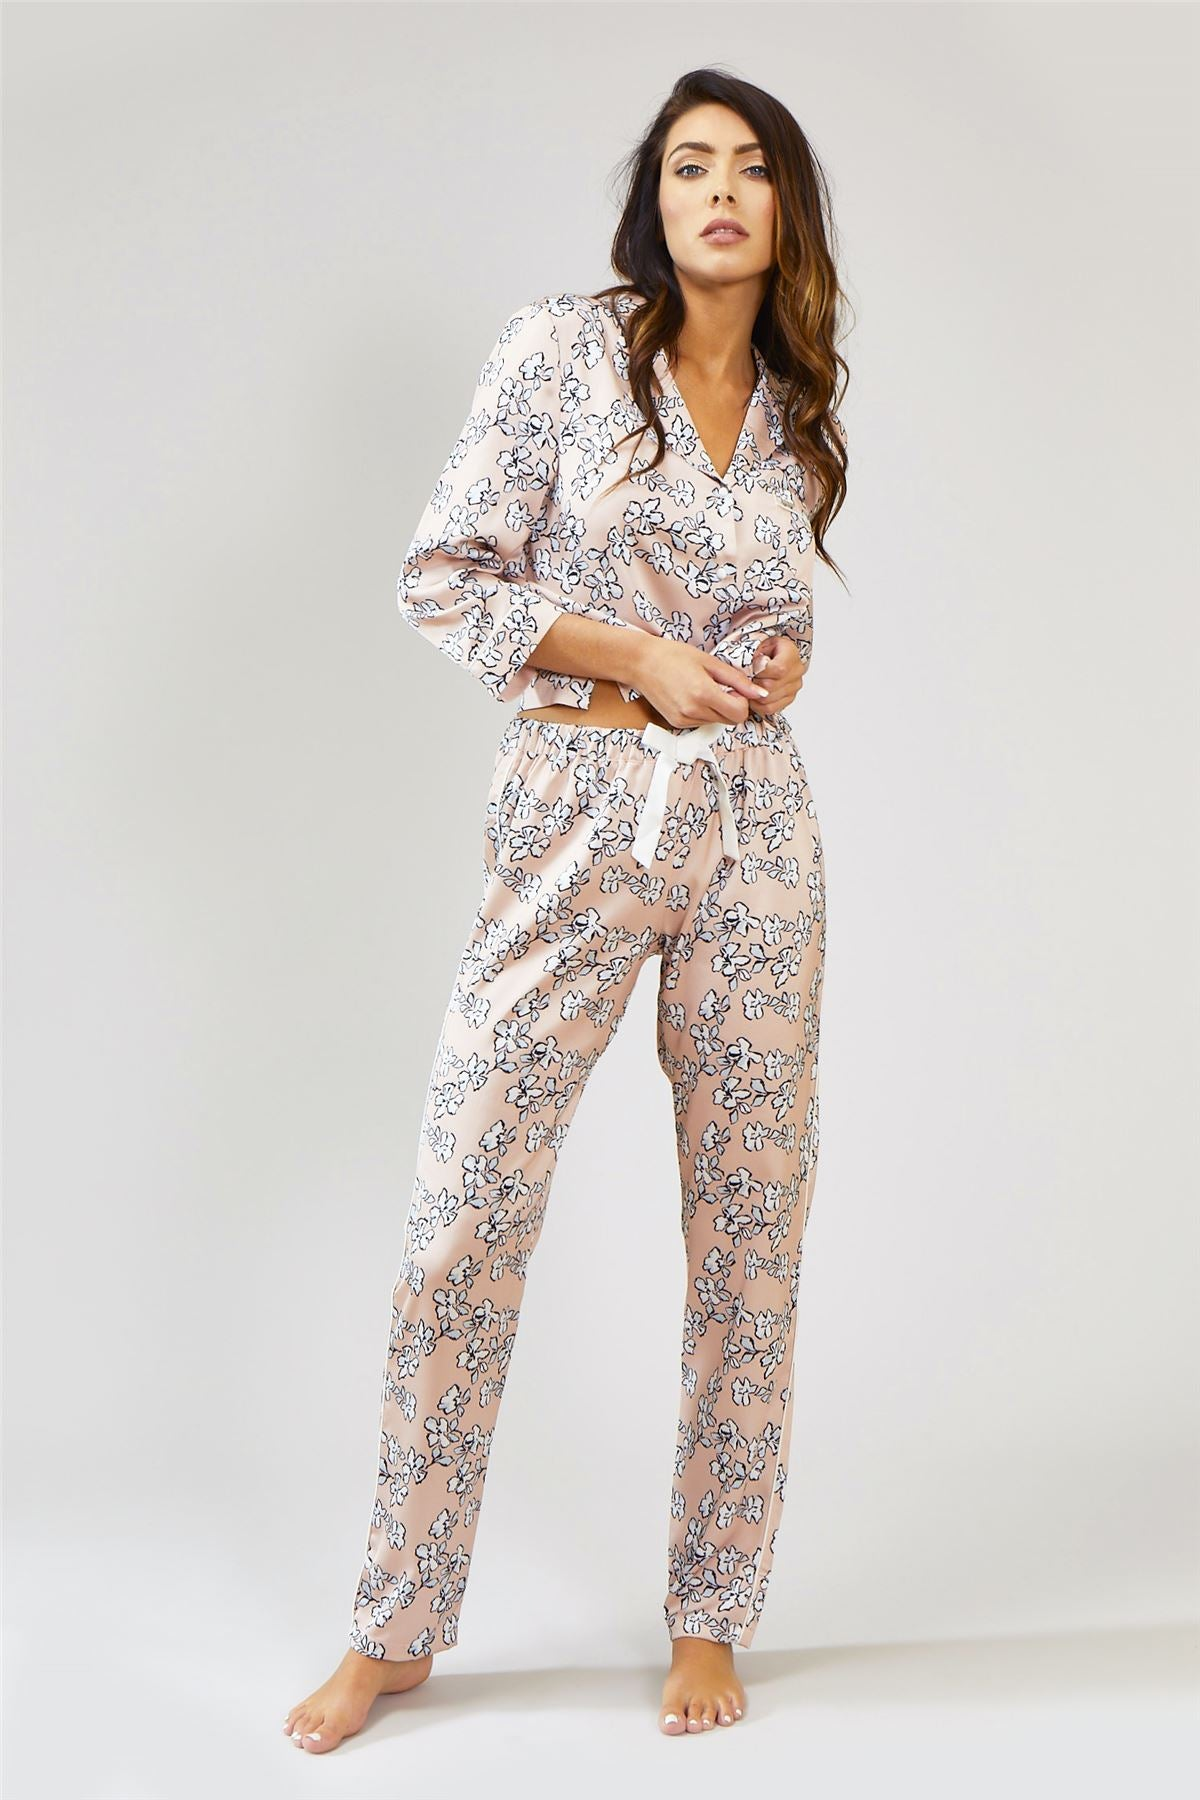 068d7cba3c73 Womens Nightwear Trousers - Floral in Blush Pink – Pretty You London US